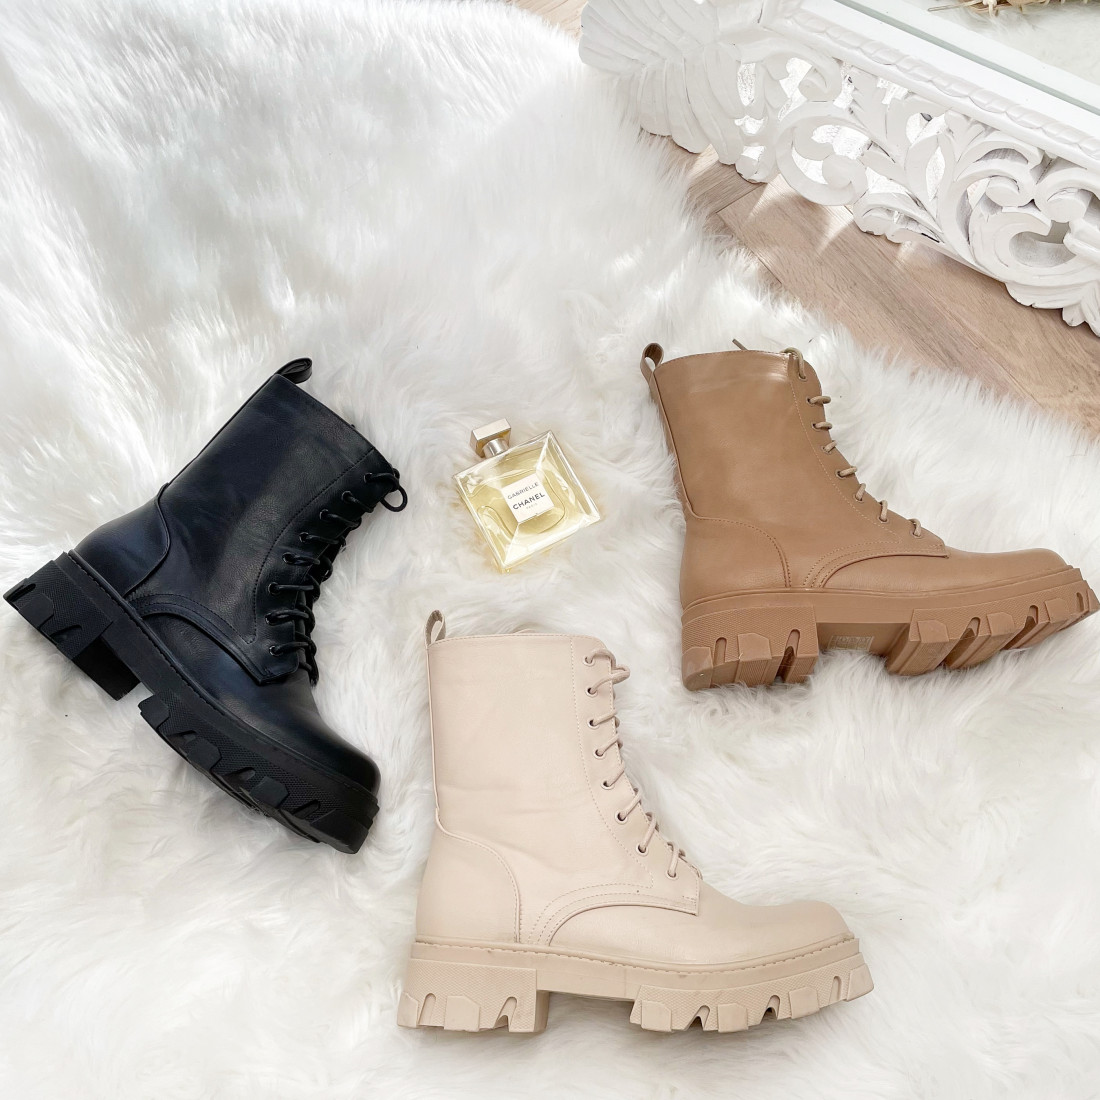 STYLE BY HASSYBA ** BOOTS